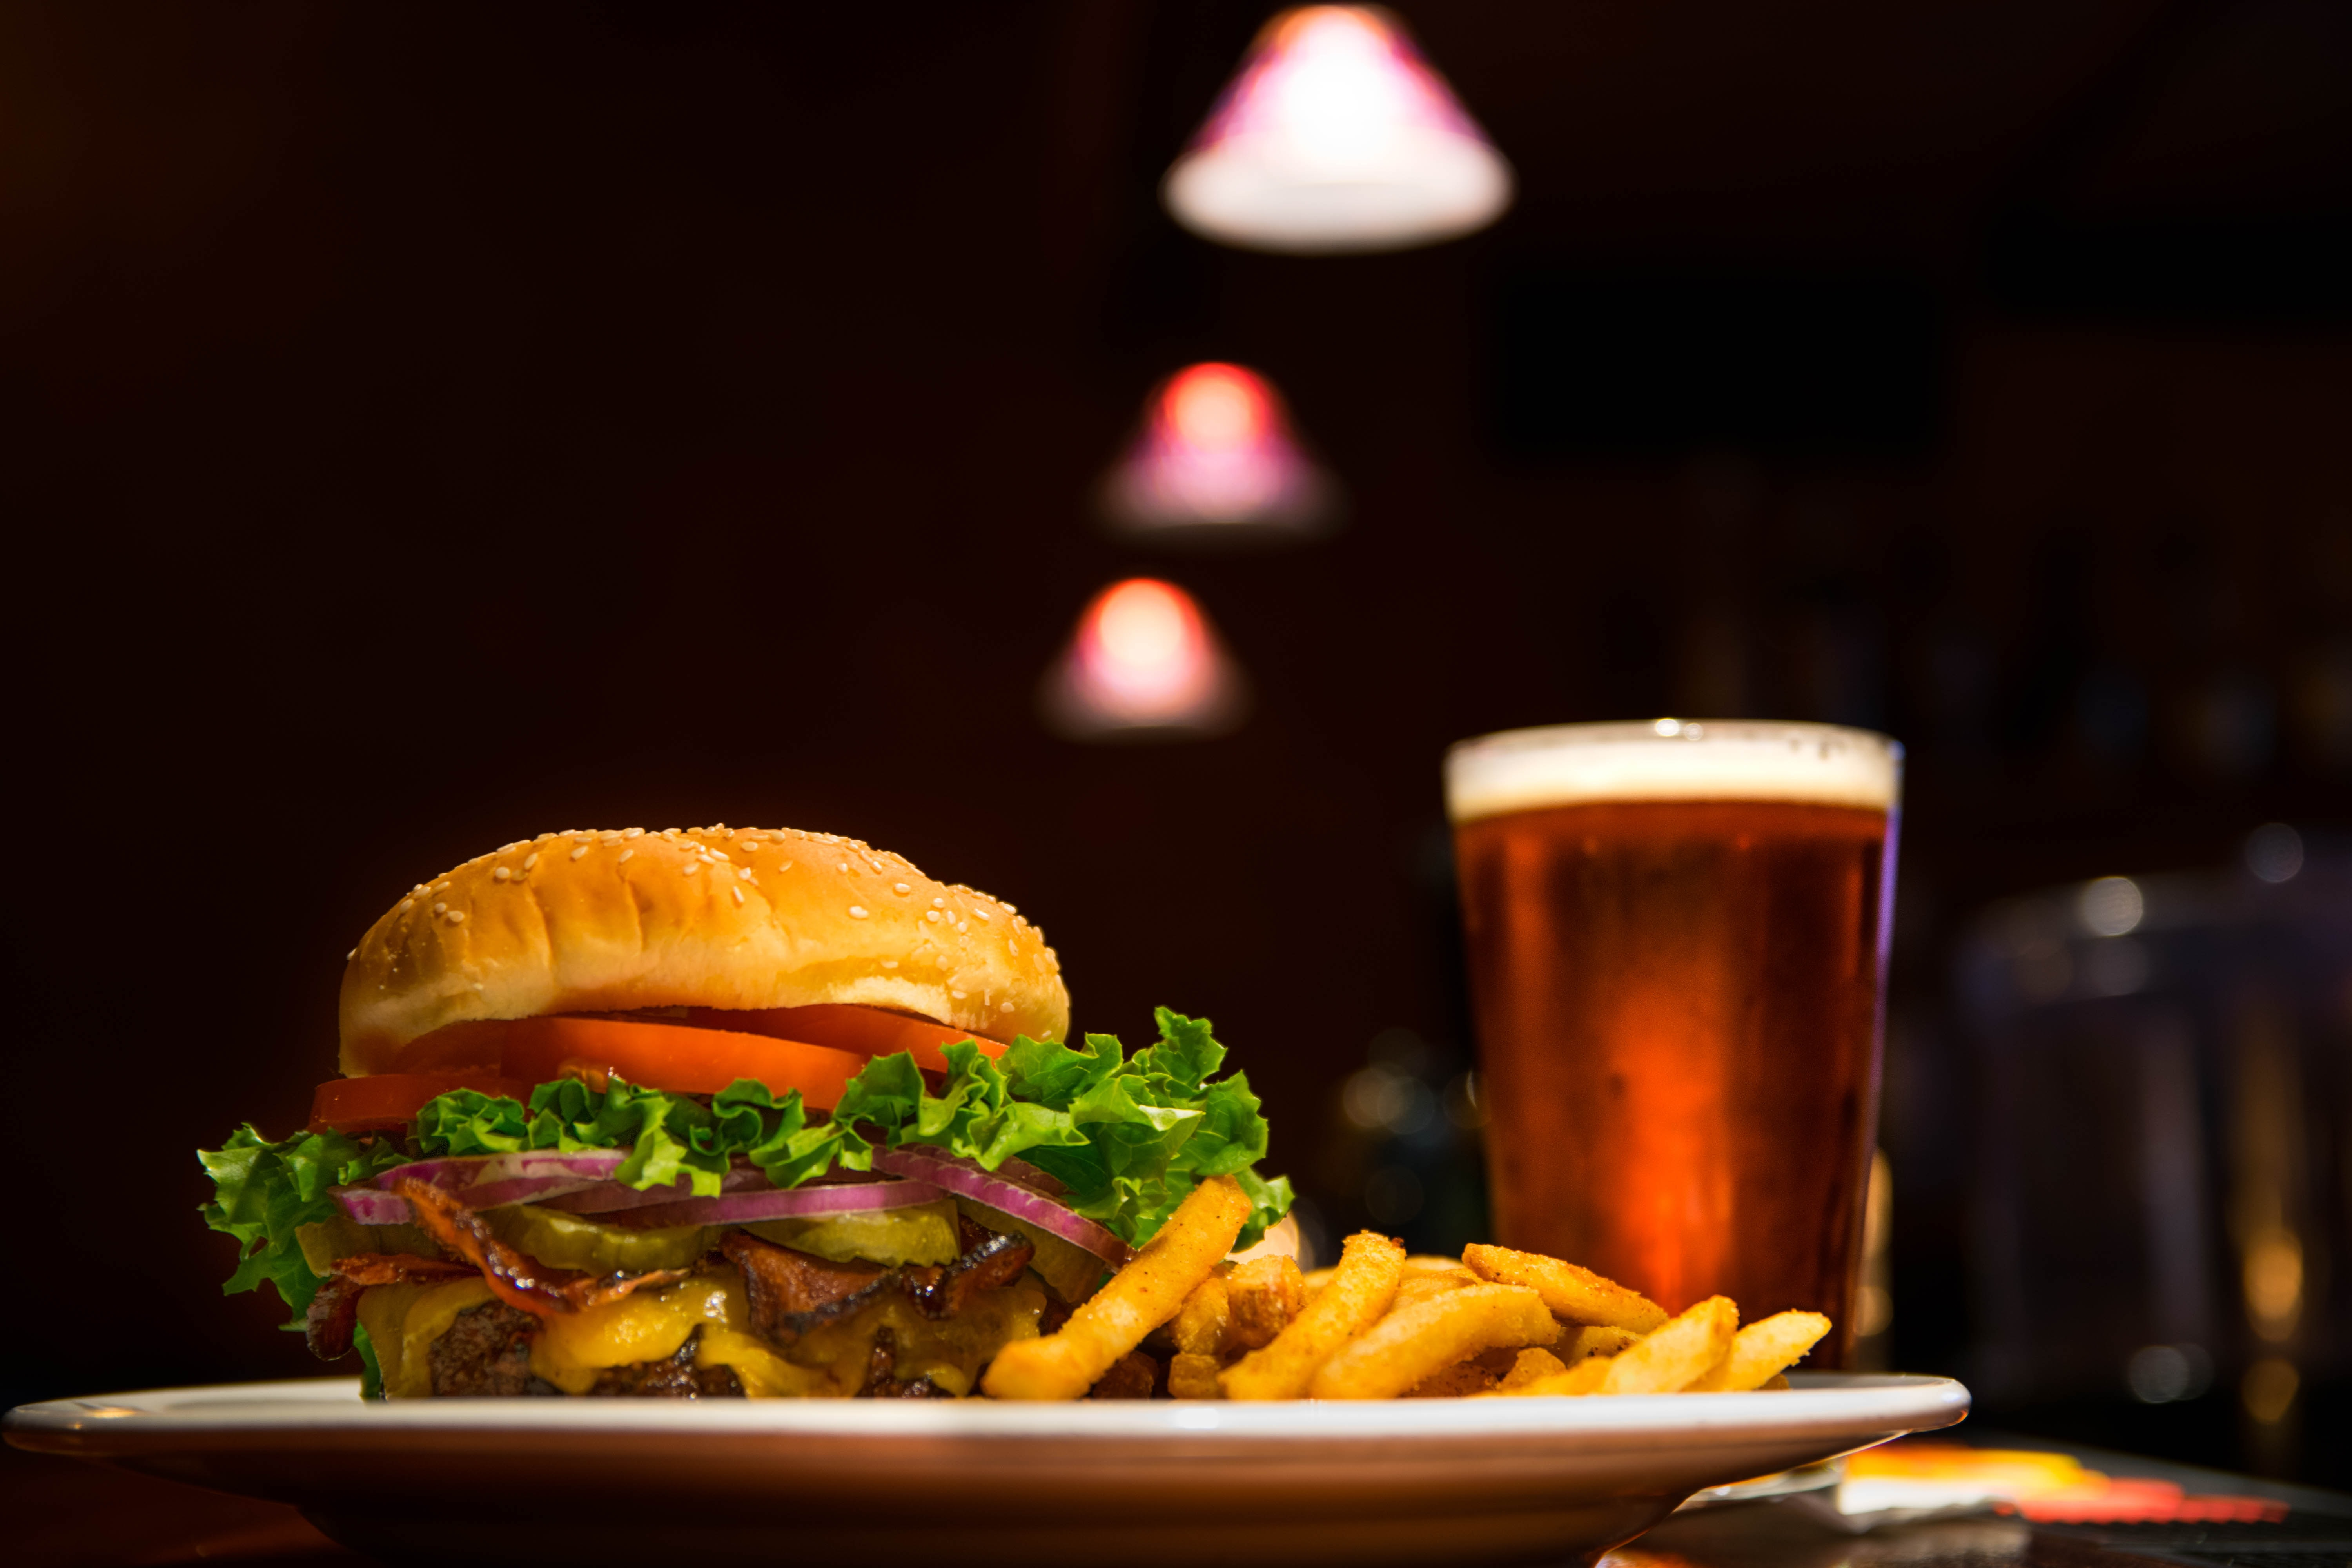 Late night cheeseburger, french fries, and a beer at the bar